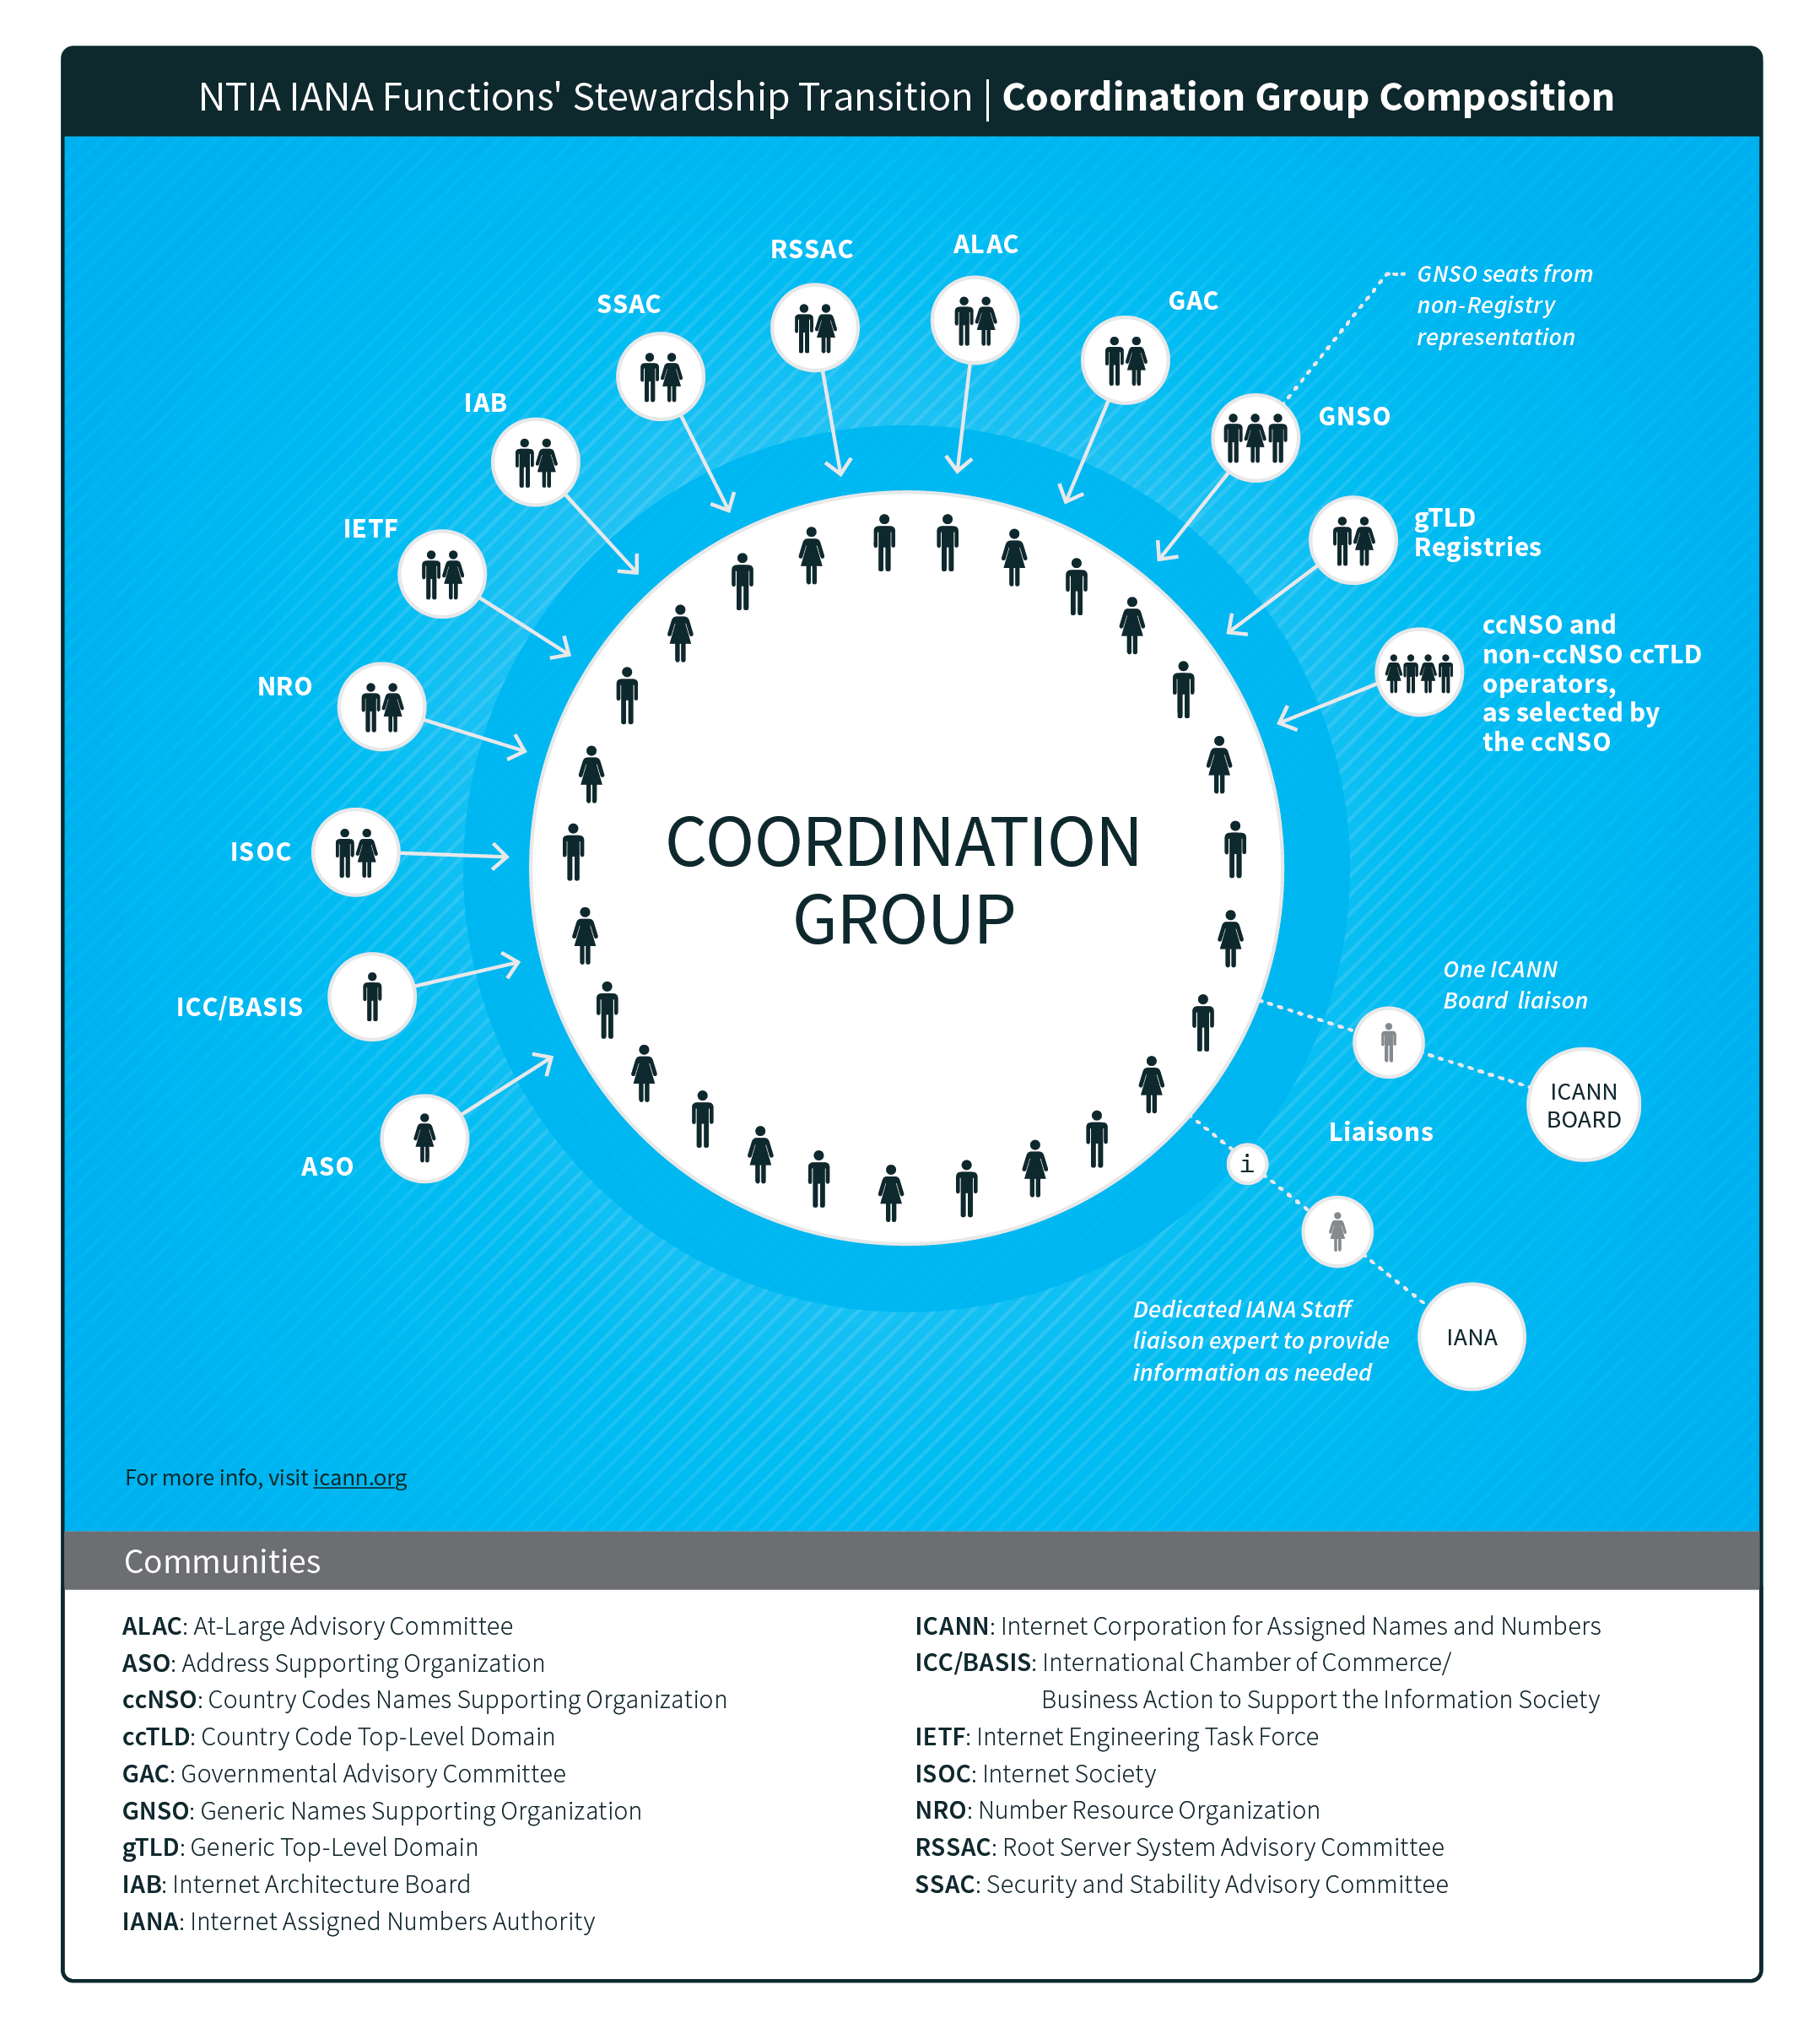 Graphic of NTIA IANA functions transition Coordination Group Composition